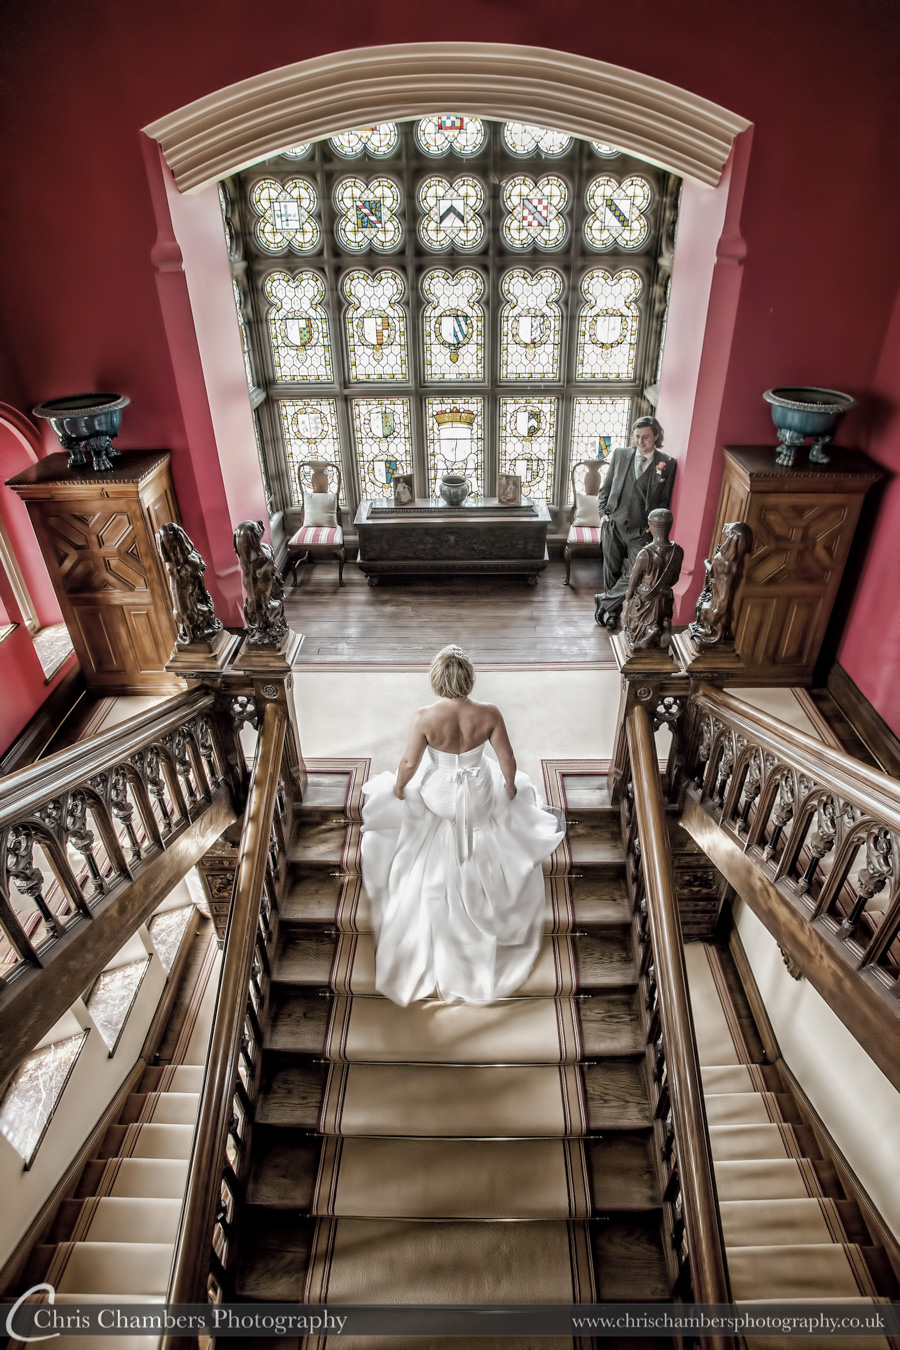 Carlton Towers Wedding Photographer | Award winning wedding photographs | Wedding Photography taken at Carlton Towers in Yorkshire | Wedding photographs at Carlton Towers | Chris Chambers photography at Carlton Towers